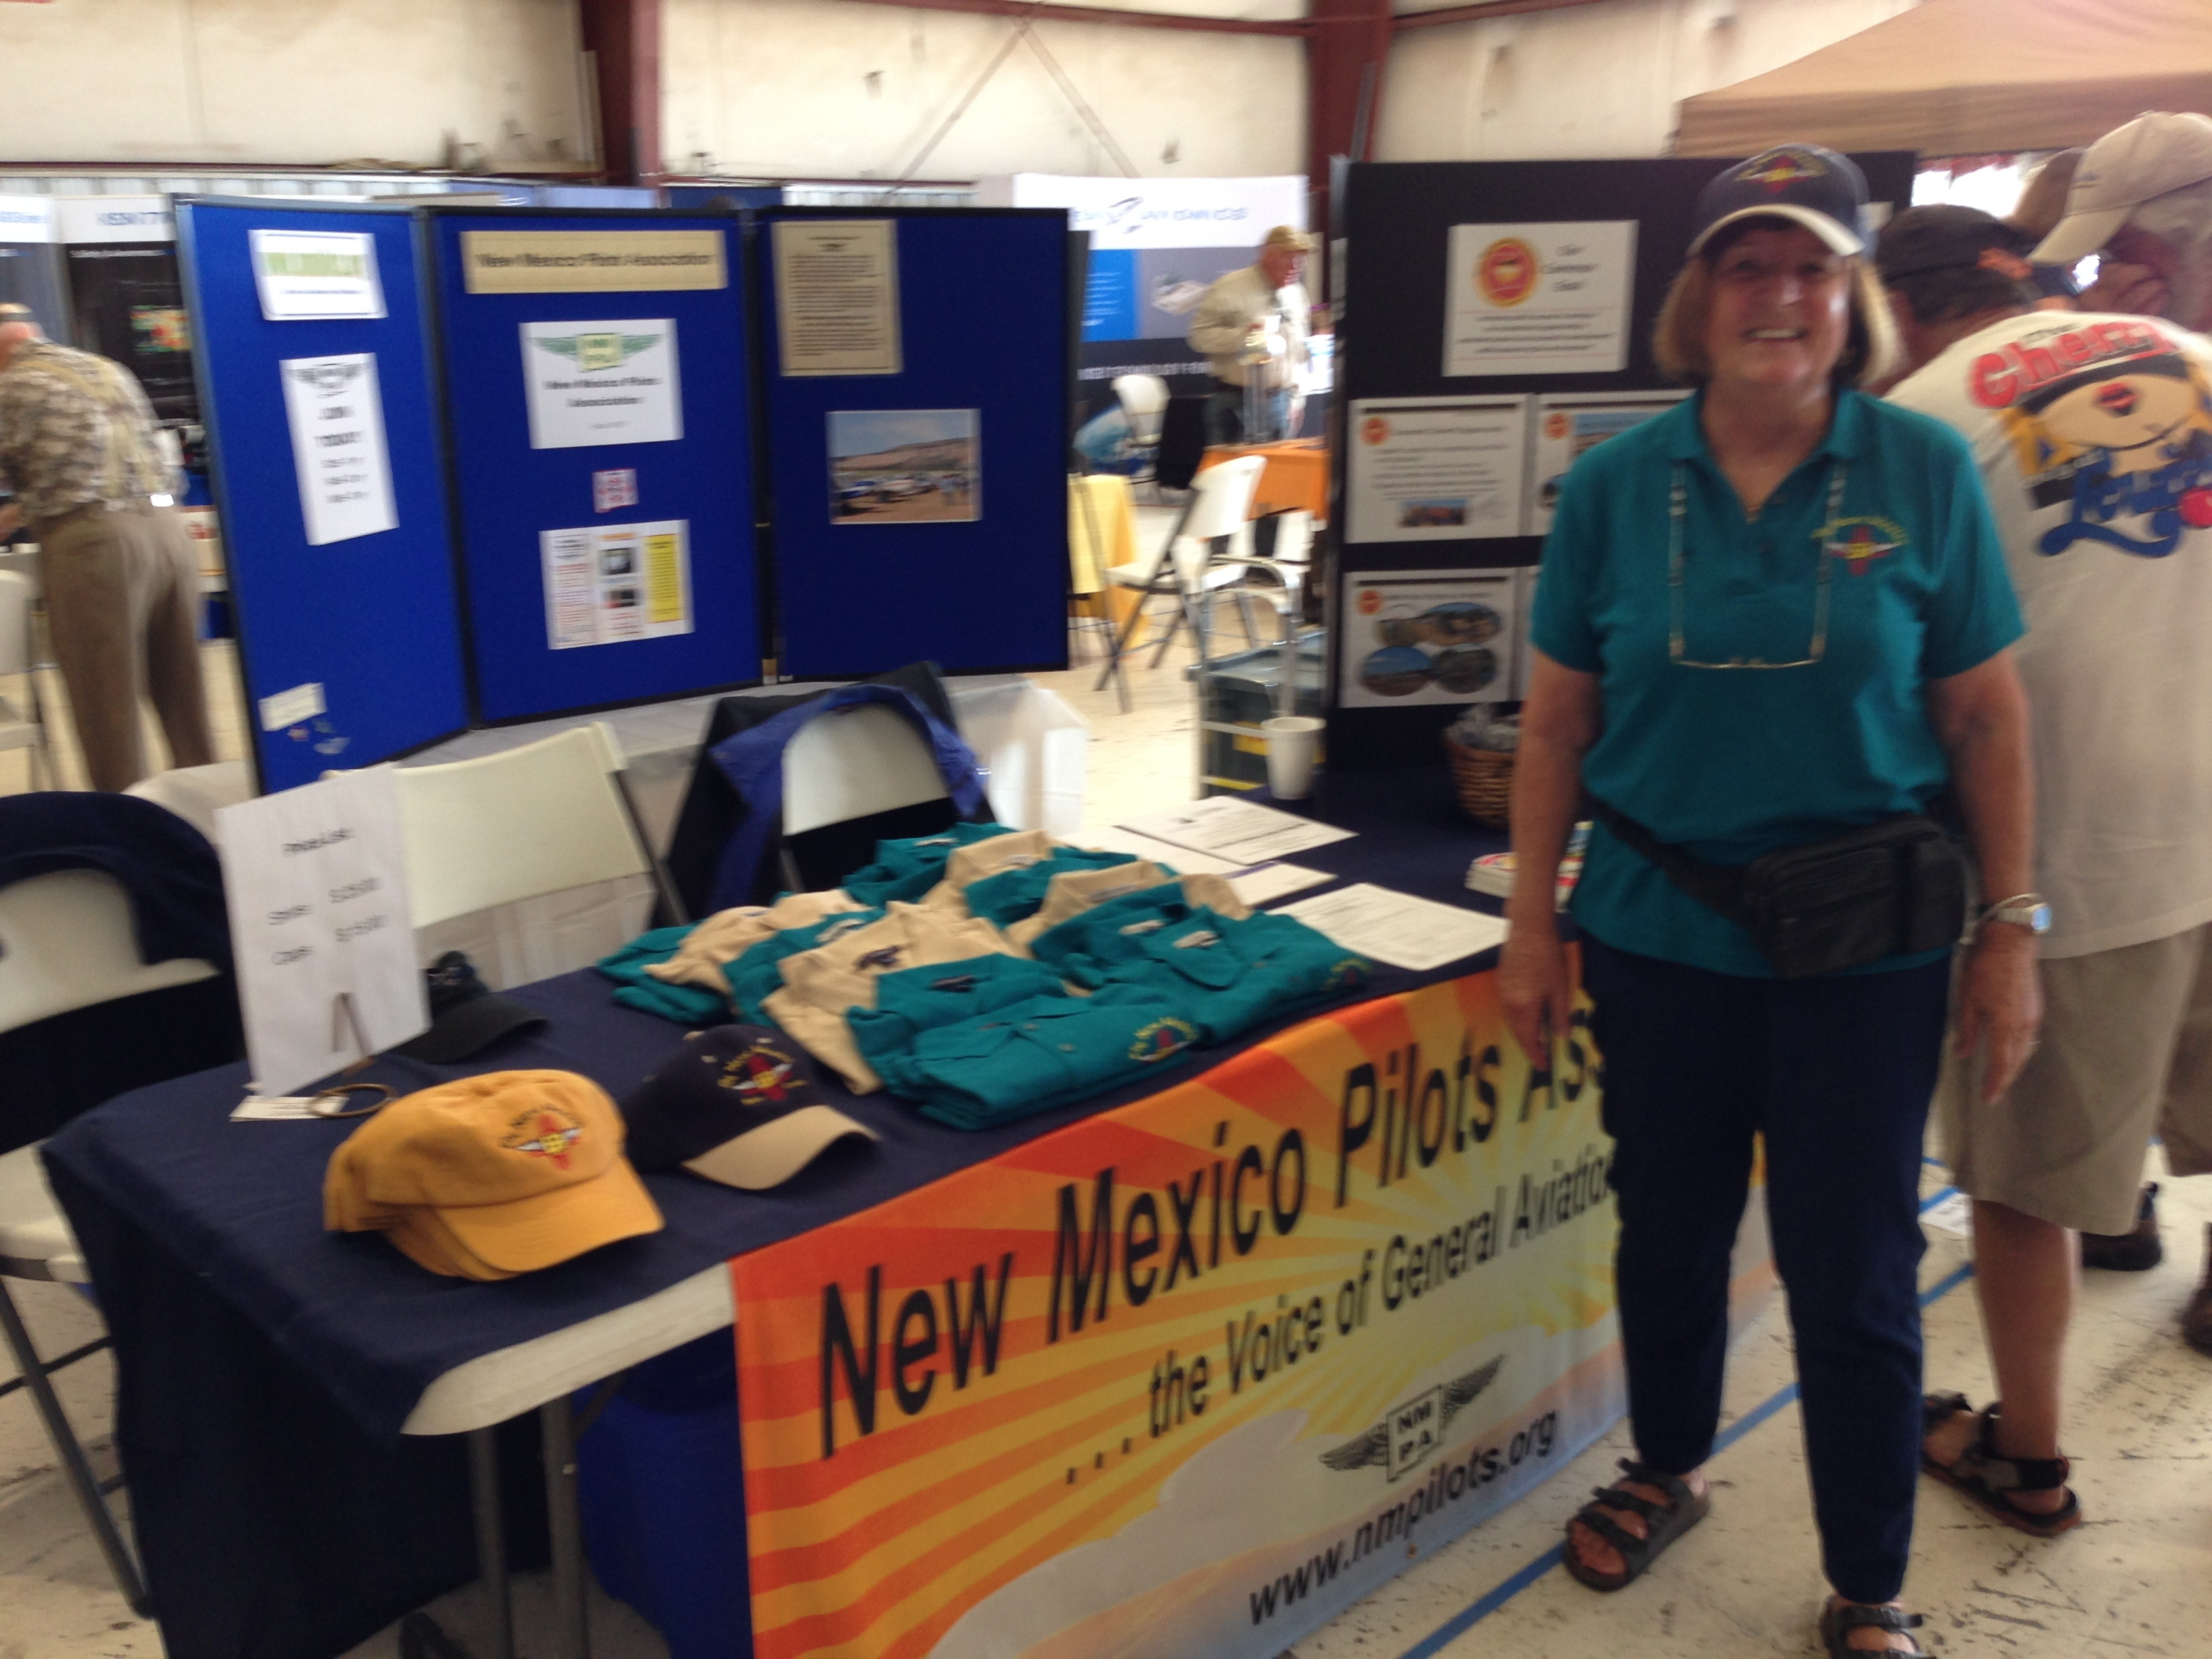 New Mexico Pilots Association